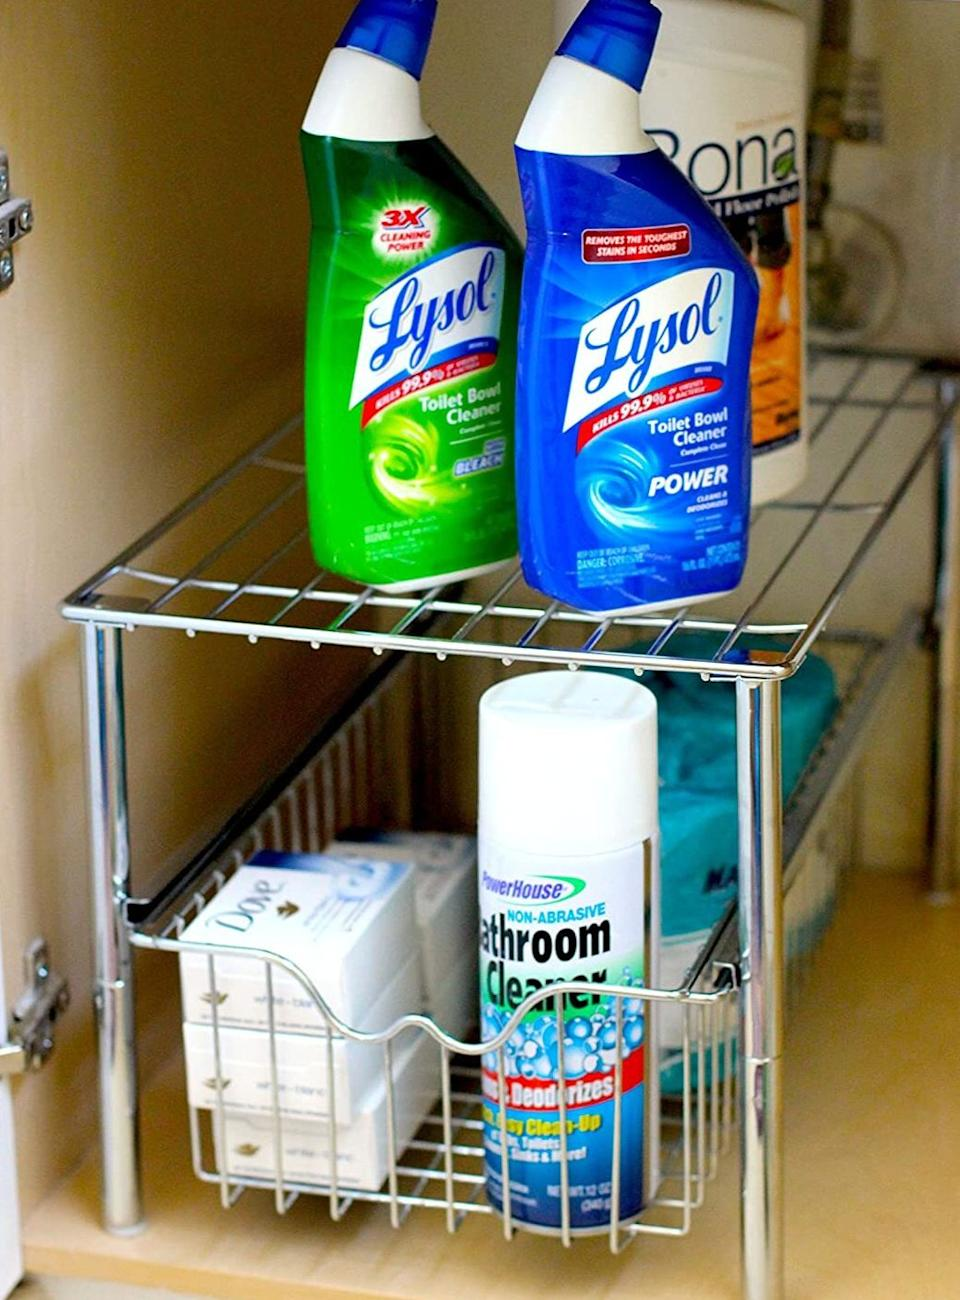 """It featuresa shelf on top so you can double up your storage space — especially great if you have reaaaally small cabinets.<br /><br /><strong>Promising review:</strong>""""These are nice pieces that helped me organize underneath my bathroom sink! They fit perfectly!<strong>After organizing everything, I was so surprised I had so much more room that I grabbed more items out of the linen closet to fill it up.</strong>I still have a lot of room left. I bought these based off the high ratings and they hold true. (This is Brad's wife.)"""" —<a href=""""https://amzn.to/3ahYd4n"""" target=""""_blank"""" rel=""""nofollow noopener noreferrer"""" data-skimlinks-tracking=""""5723569"""" data-vars-affiliate=""""Amazon"""" data-vars-href=""""https://www.amazon.com/gp/customer-reviews/R18X2W0VAIZLRE?tag=bfjasmin-20&ascsubtag=5723569%2C25%2C31%2Cmobile_web%2C0%2C0%2C14870753"""" data-vars-keywords=""""cleaning"""" data-vars-link-id=""""14870753"""" data-vars-price="""""""" data-vars-product-id=""""16022118"""" data-vars-retailers=""""Amazon"""">Brad J. Leahy</a><br /><br /><strong>Get it from Amazon for <a href=""""https://amzn.to/2QclePp"""" target=""""_blank"""" rel=""""noopener noreferrer"""">$26.97</a> (available in two finishes).</strong>"""